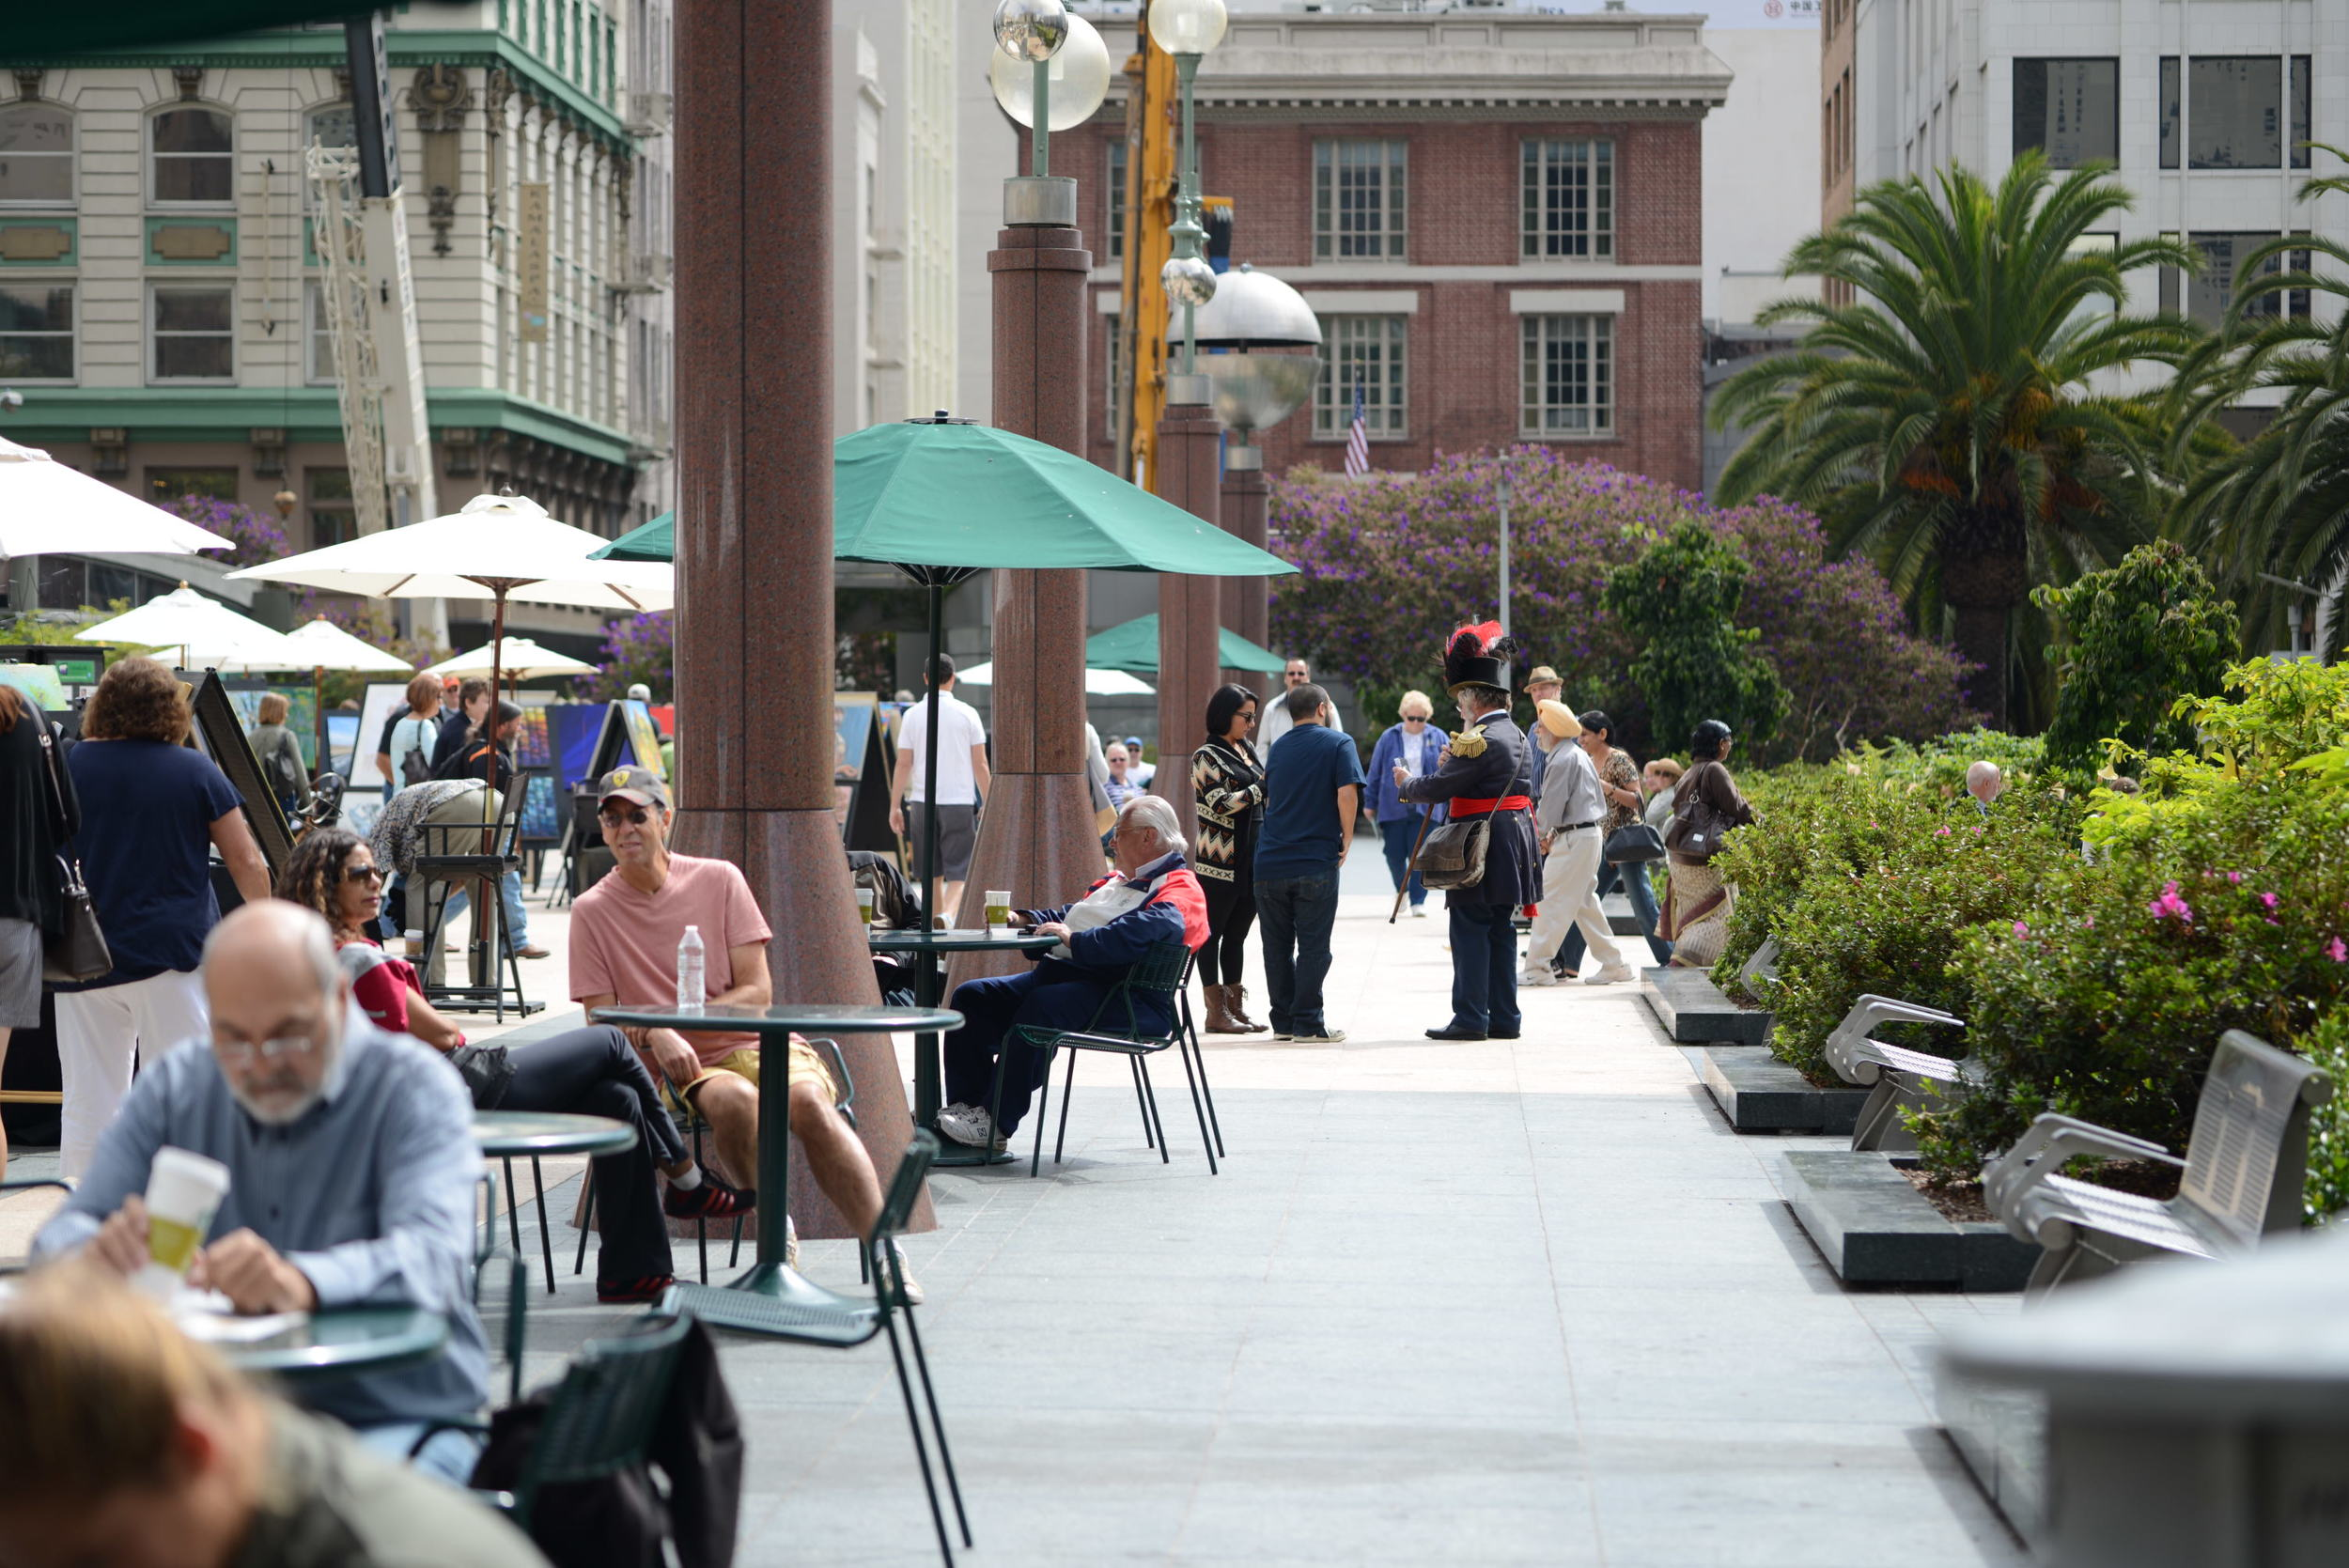 The trail took us through Union Square. We saw a tour guide dressed as Emperor Norton giving a couple some directions.